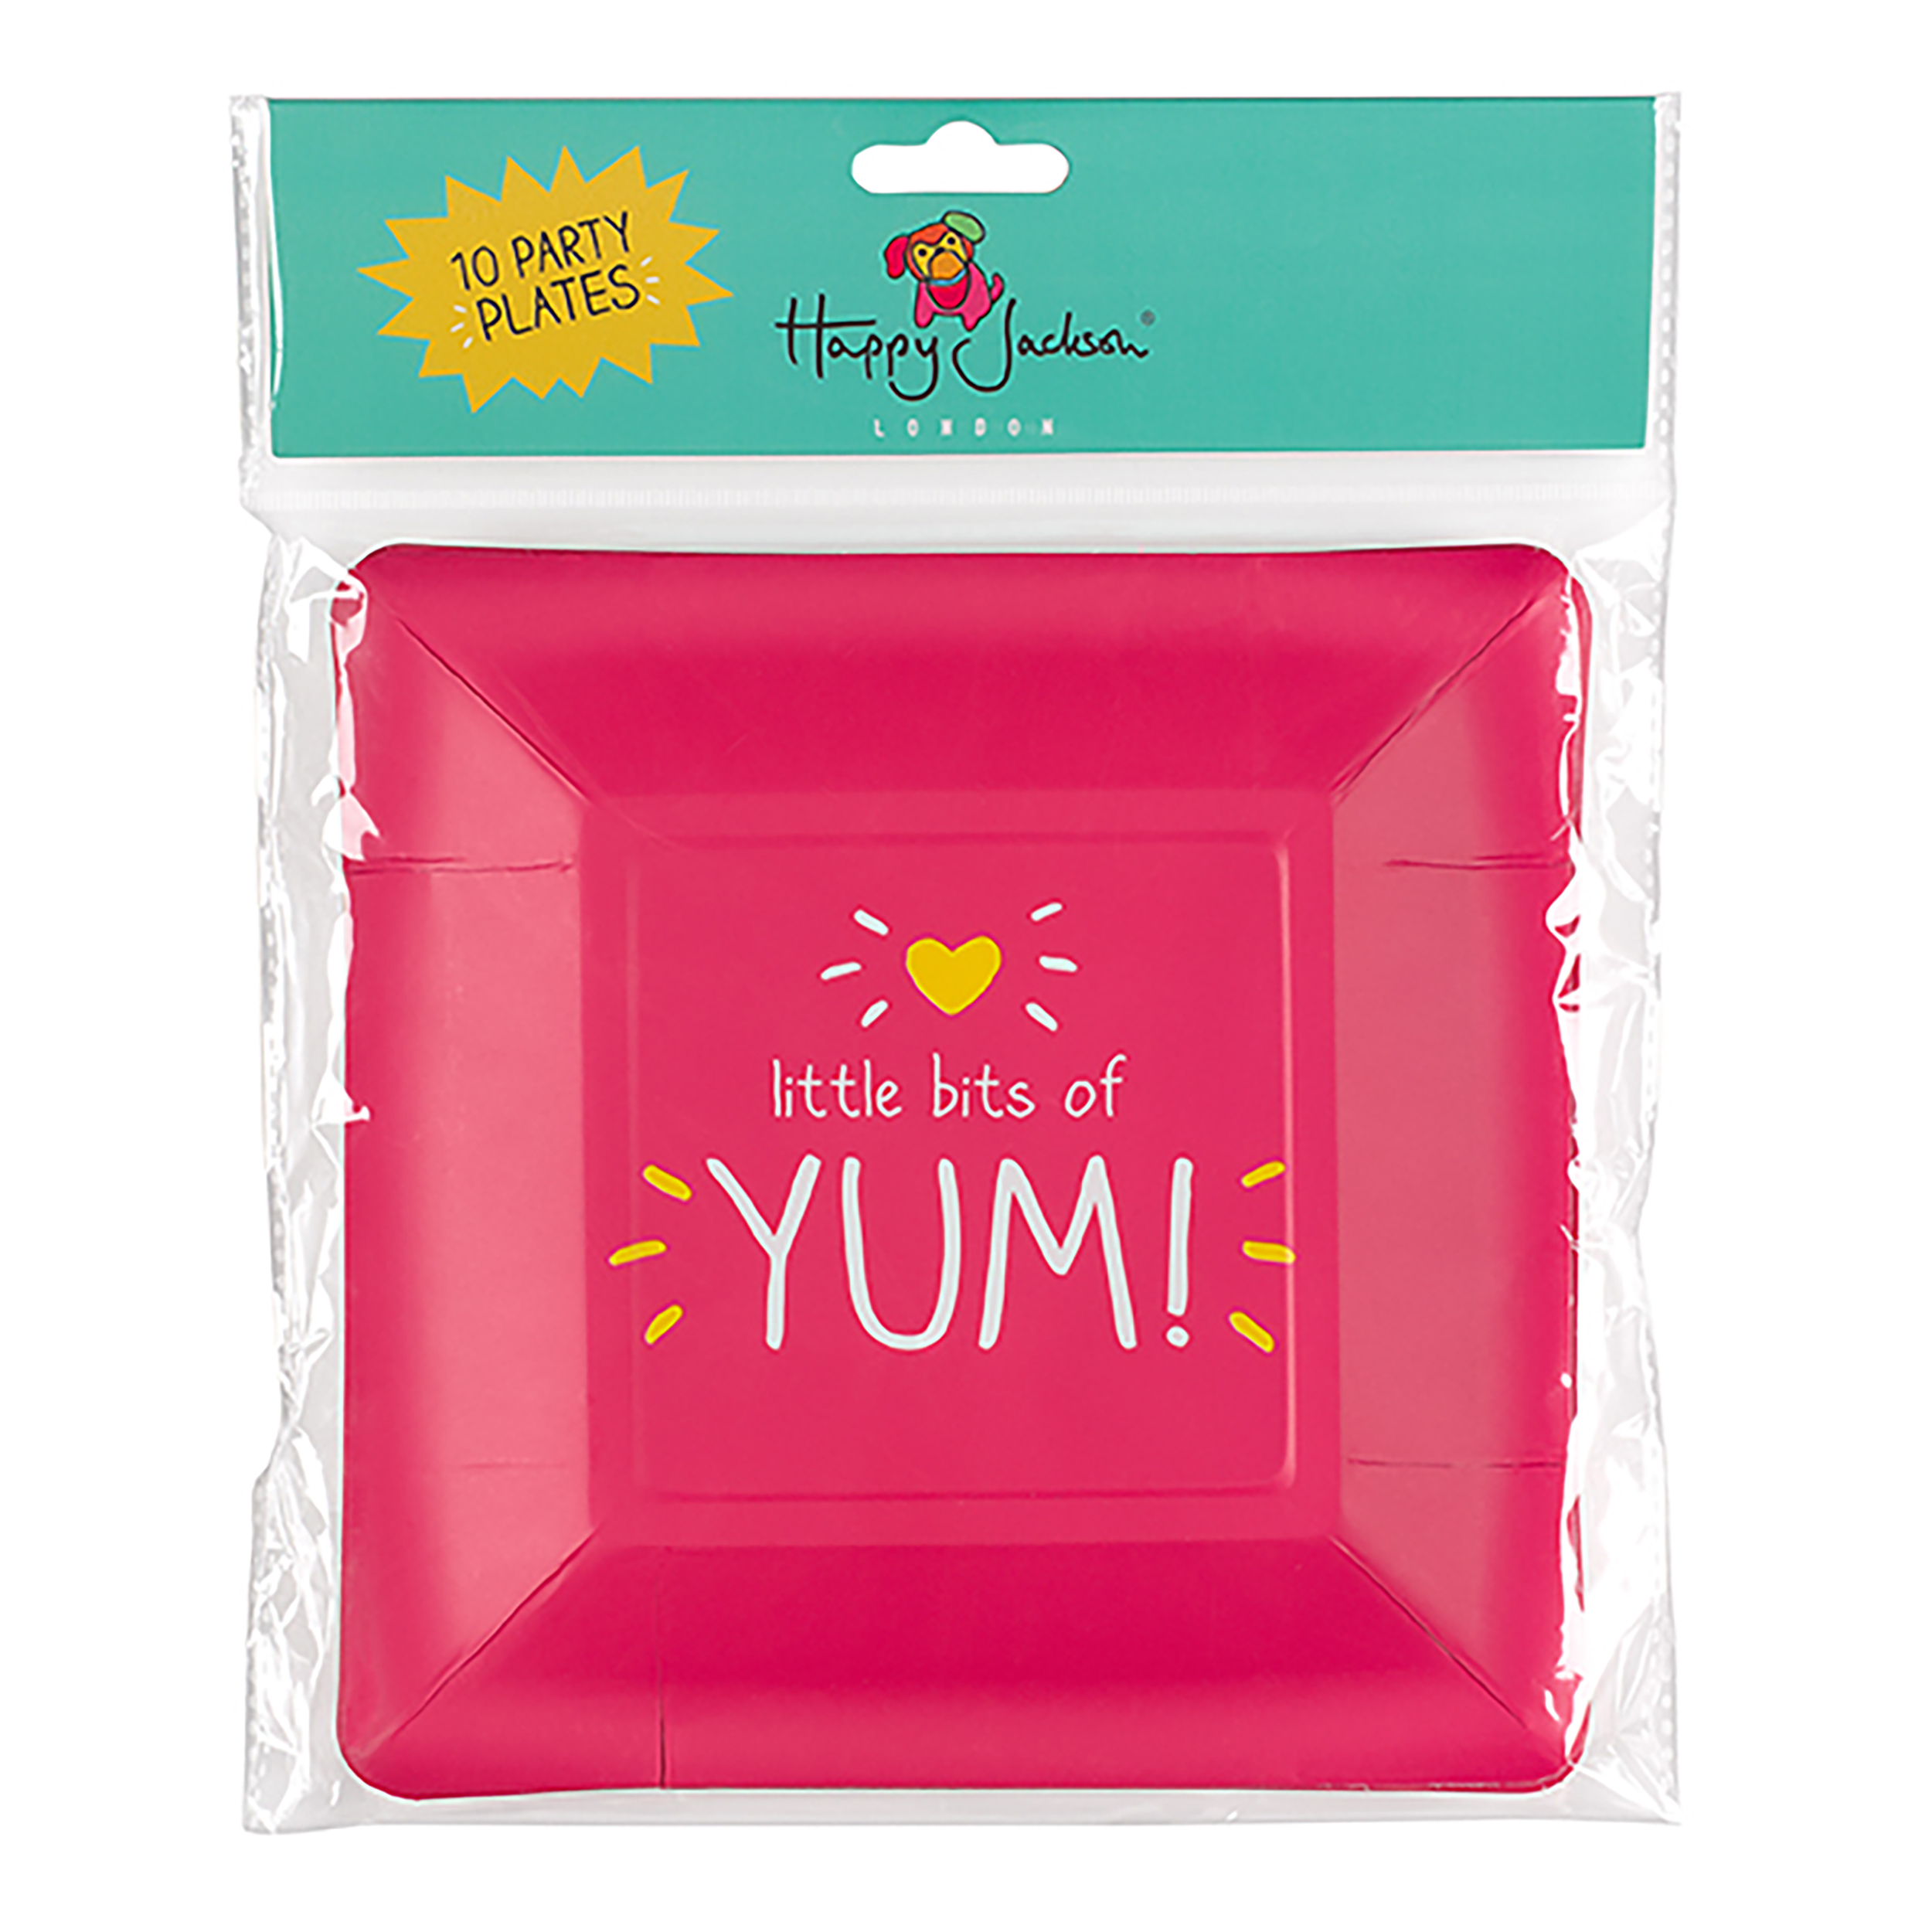 Yum' Square Party Plates